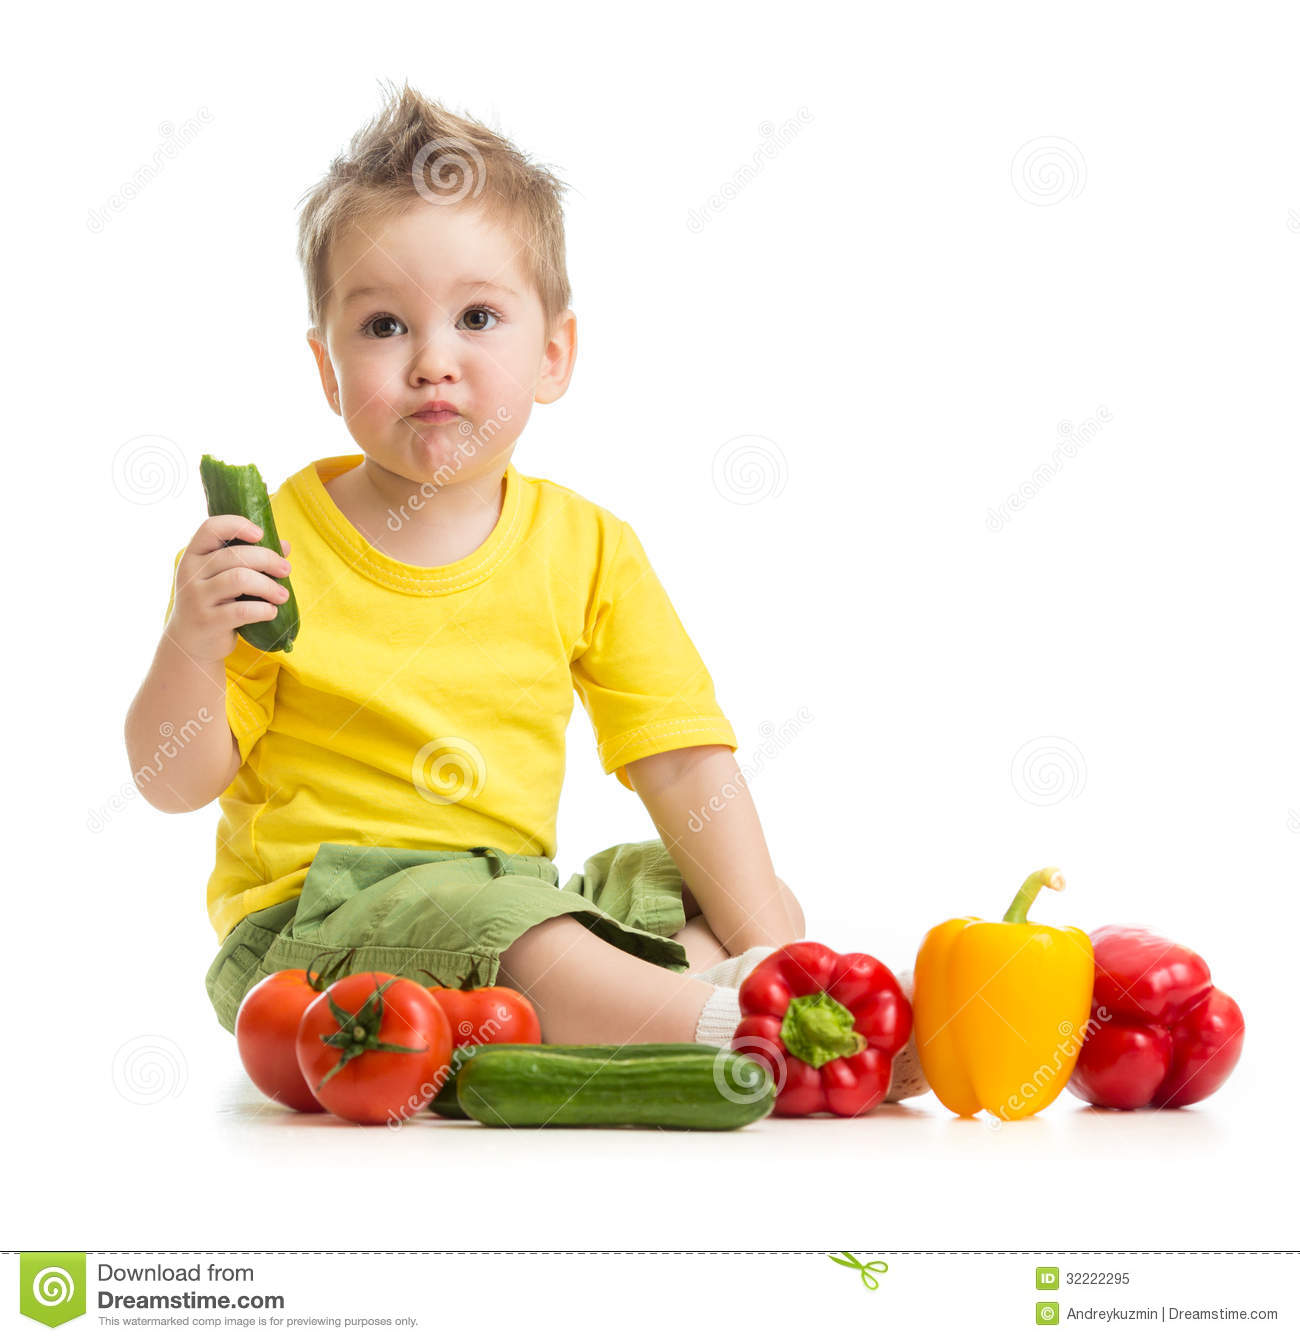 how to incourage a toddler to eat fresh foods